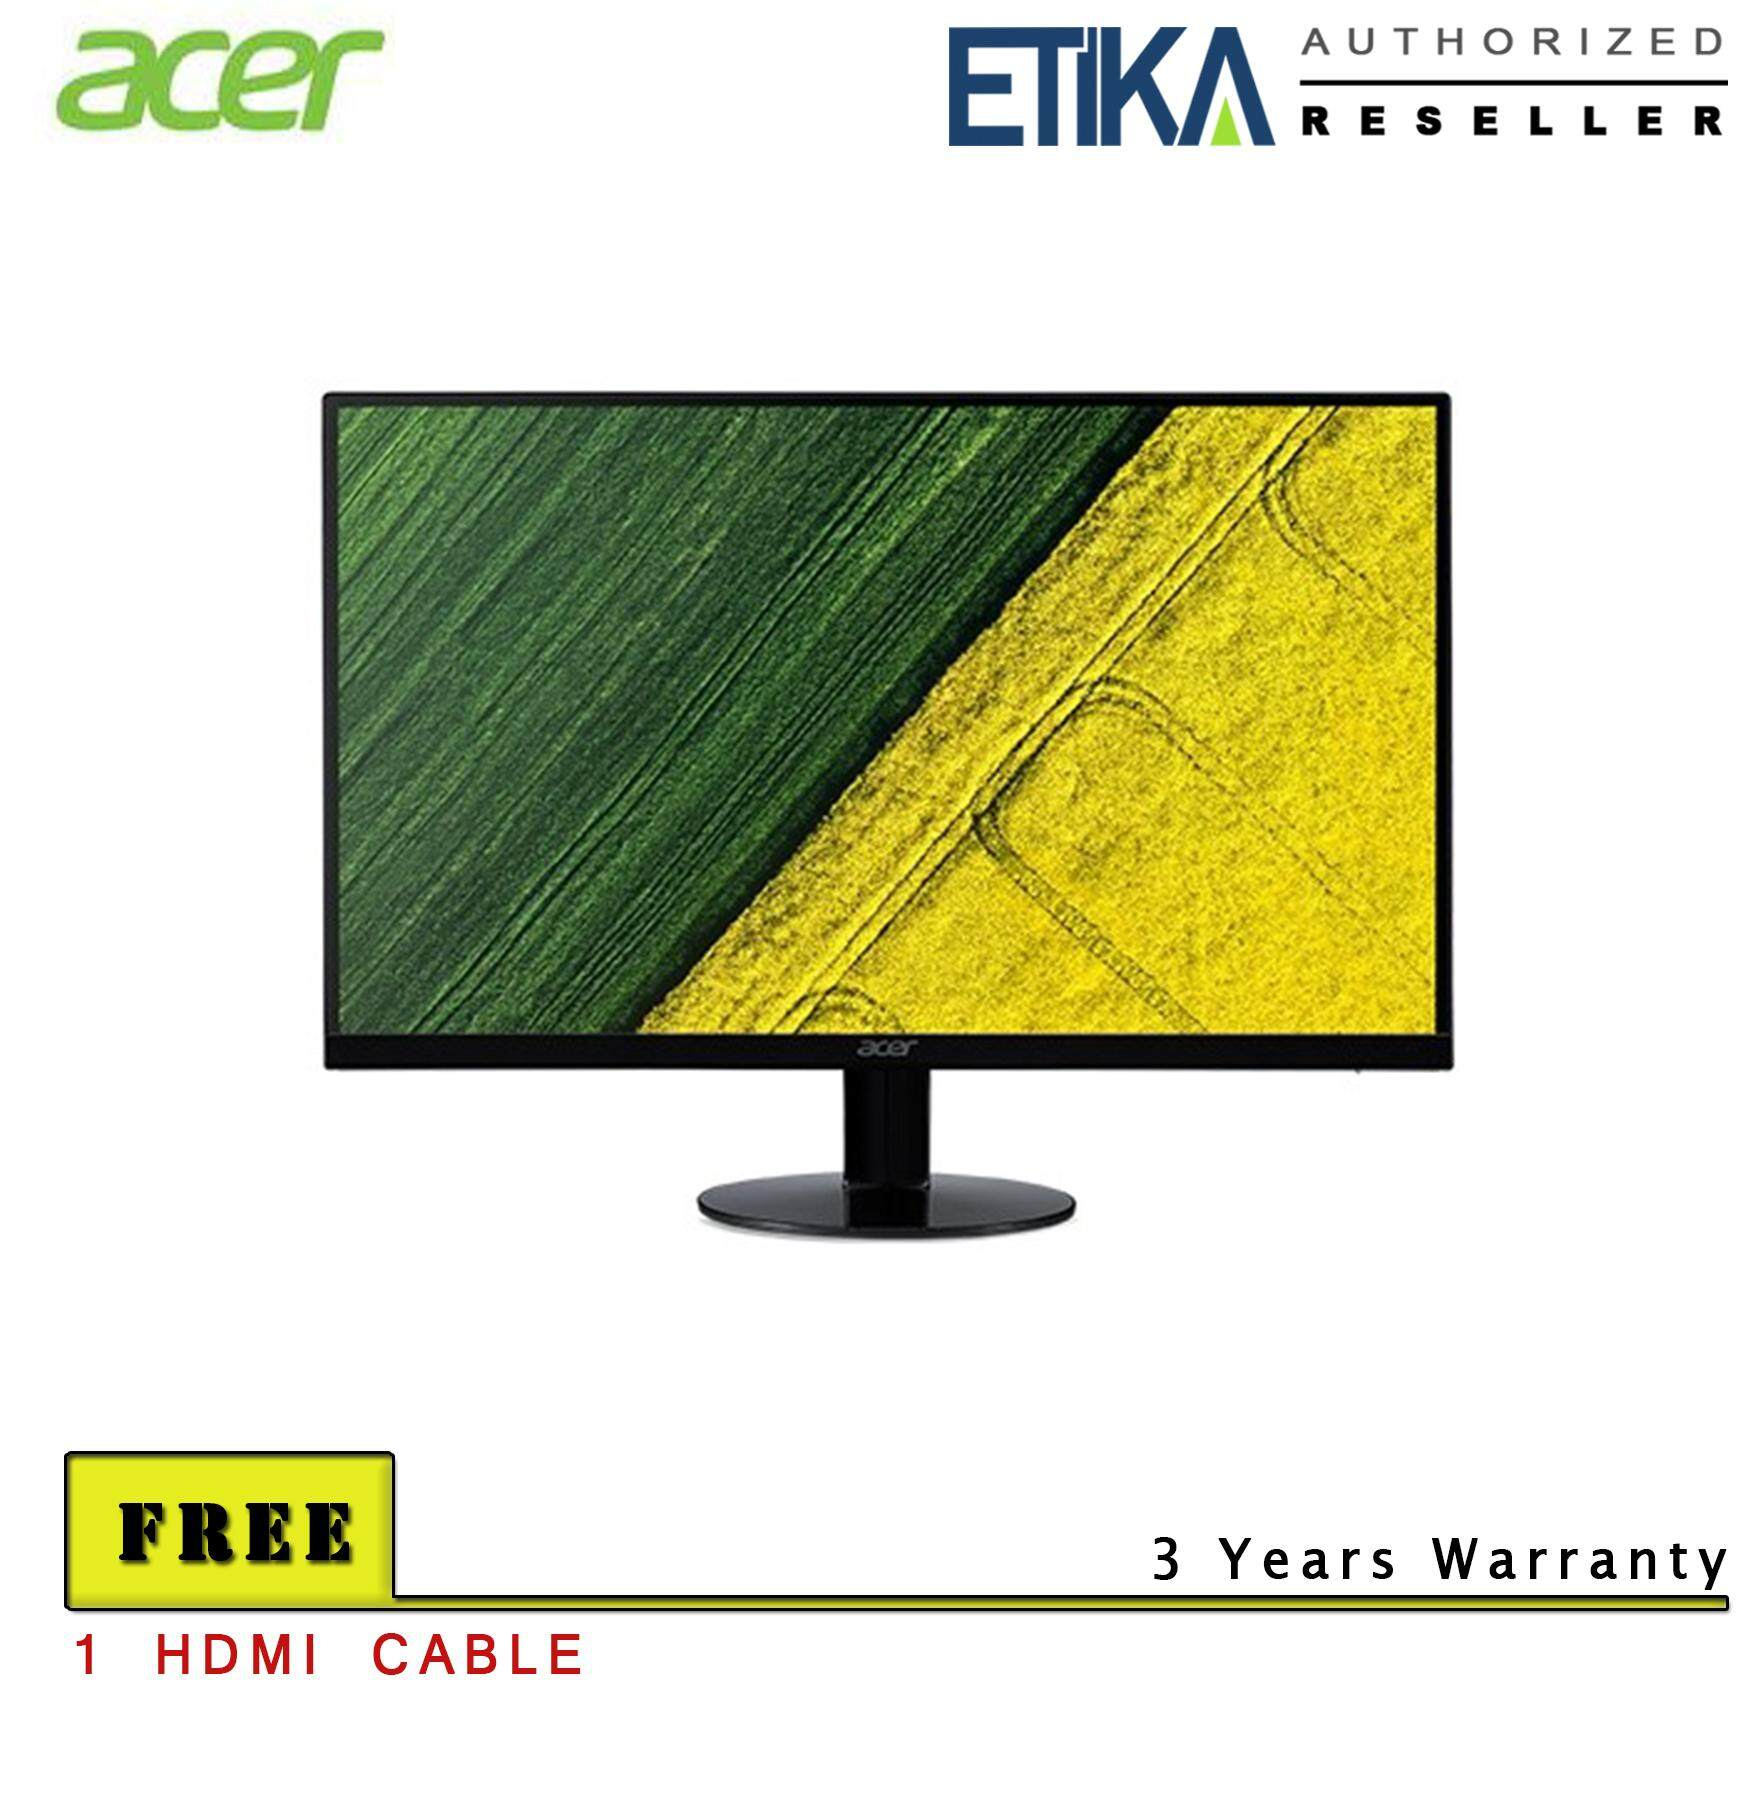 Etika Komputer Buy At Best Price In Malaysia Www 1 Set Acer Sa240y 24 Led Monitor Free Hdmi Cable